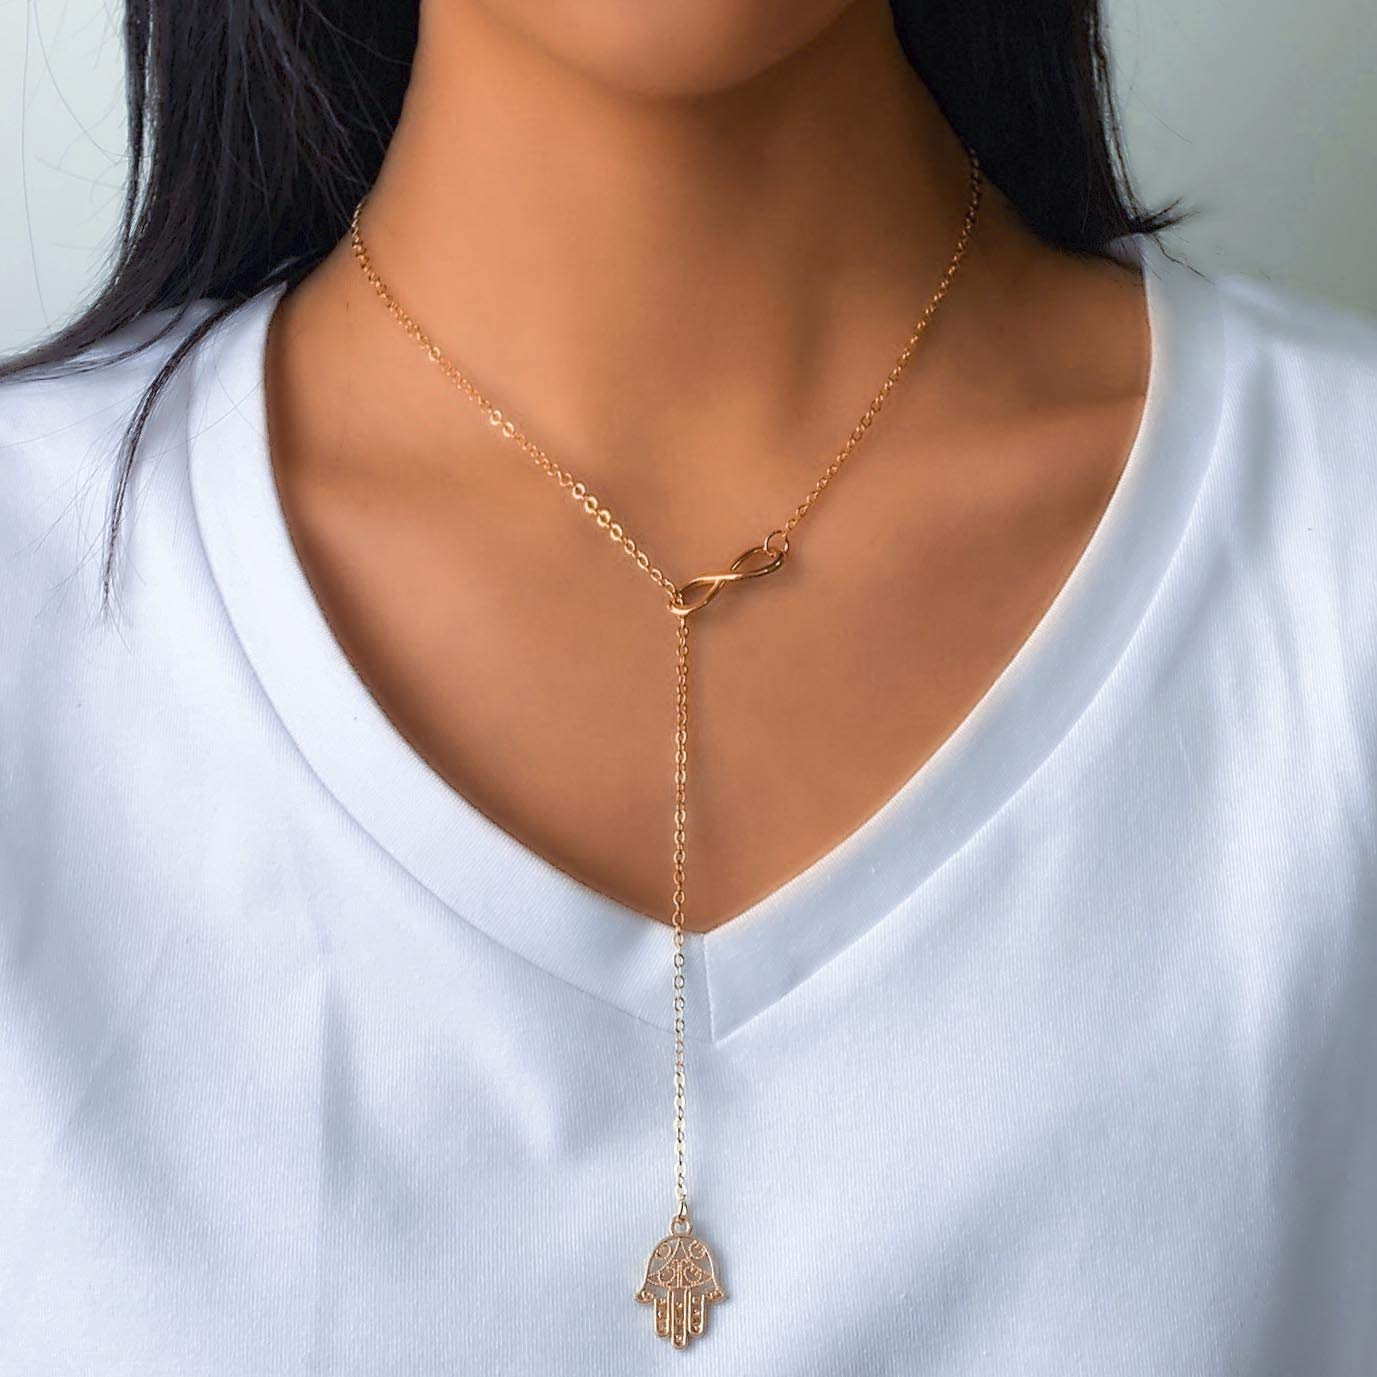 Avanlin Vintage Hamsa Infinity Necklace Gold Hand of Fatima Pendant Necklaces Y Drop Lariat Chain Jewelry for Women and Girls